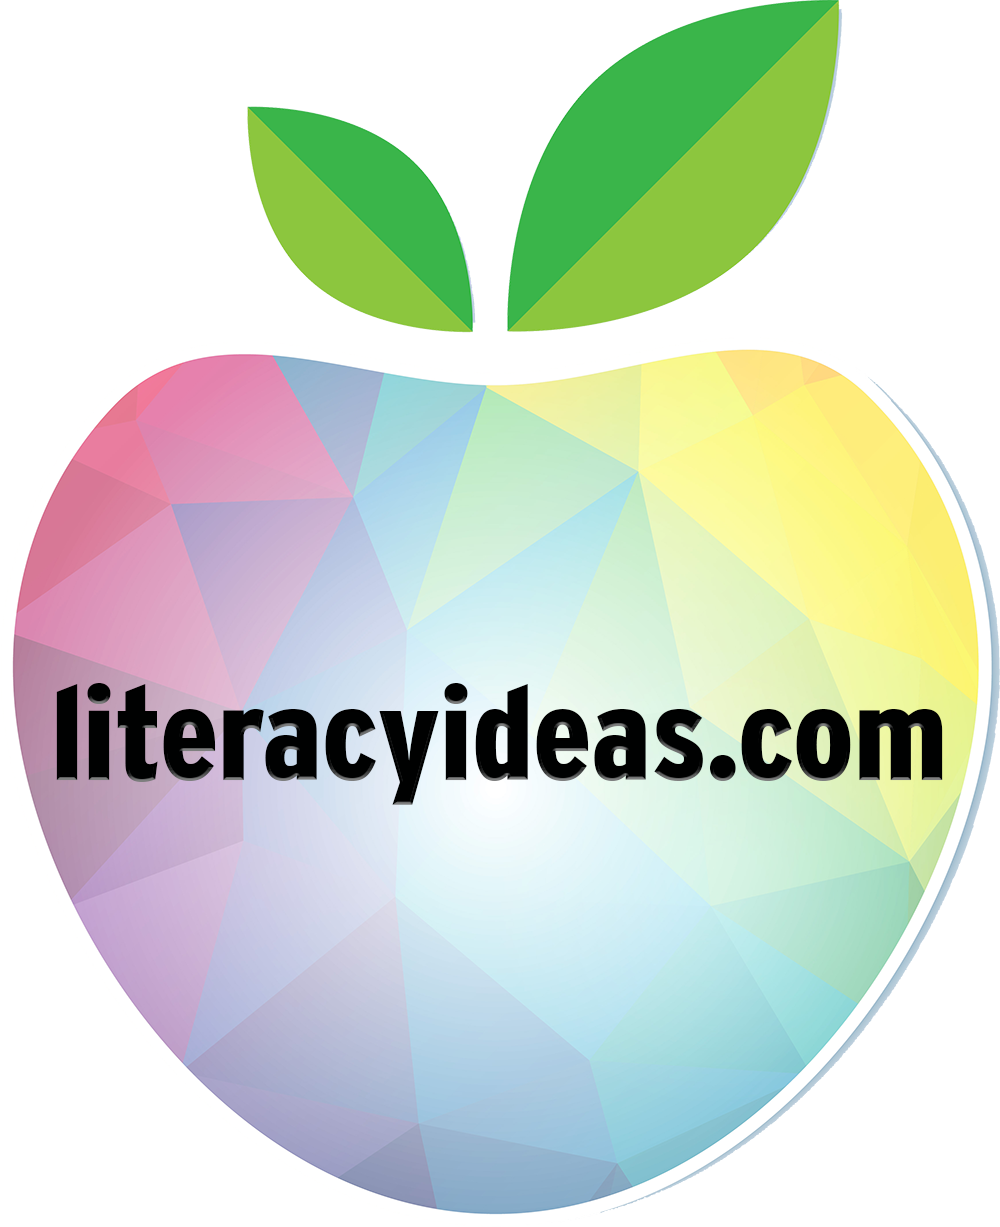 20 Key Stage 2 Literacy interactive teaching resources for Primary/Elementary Schools.